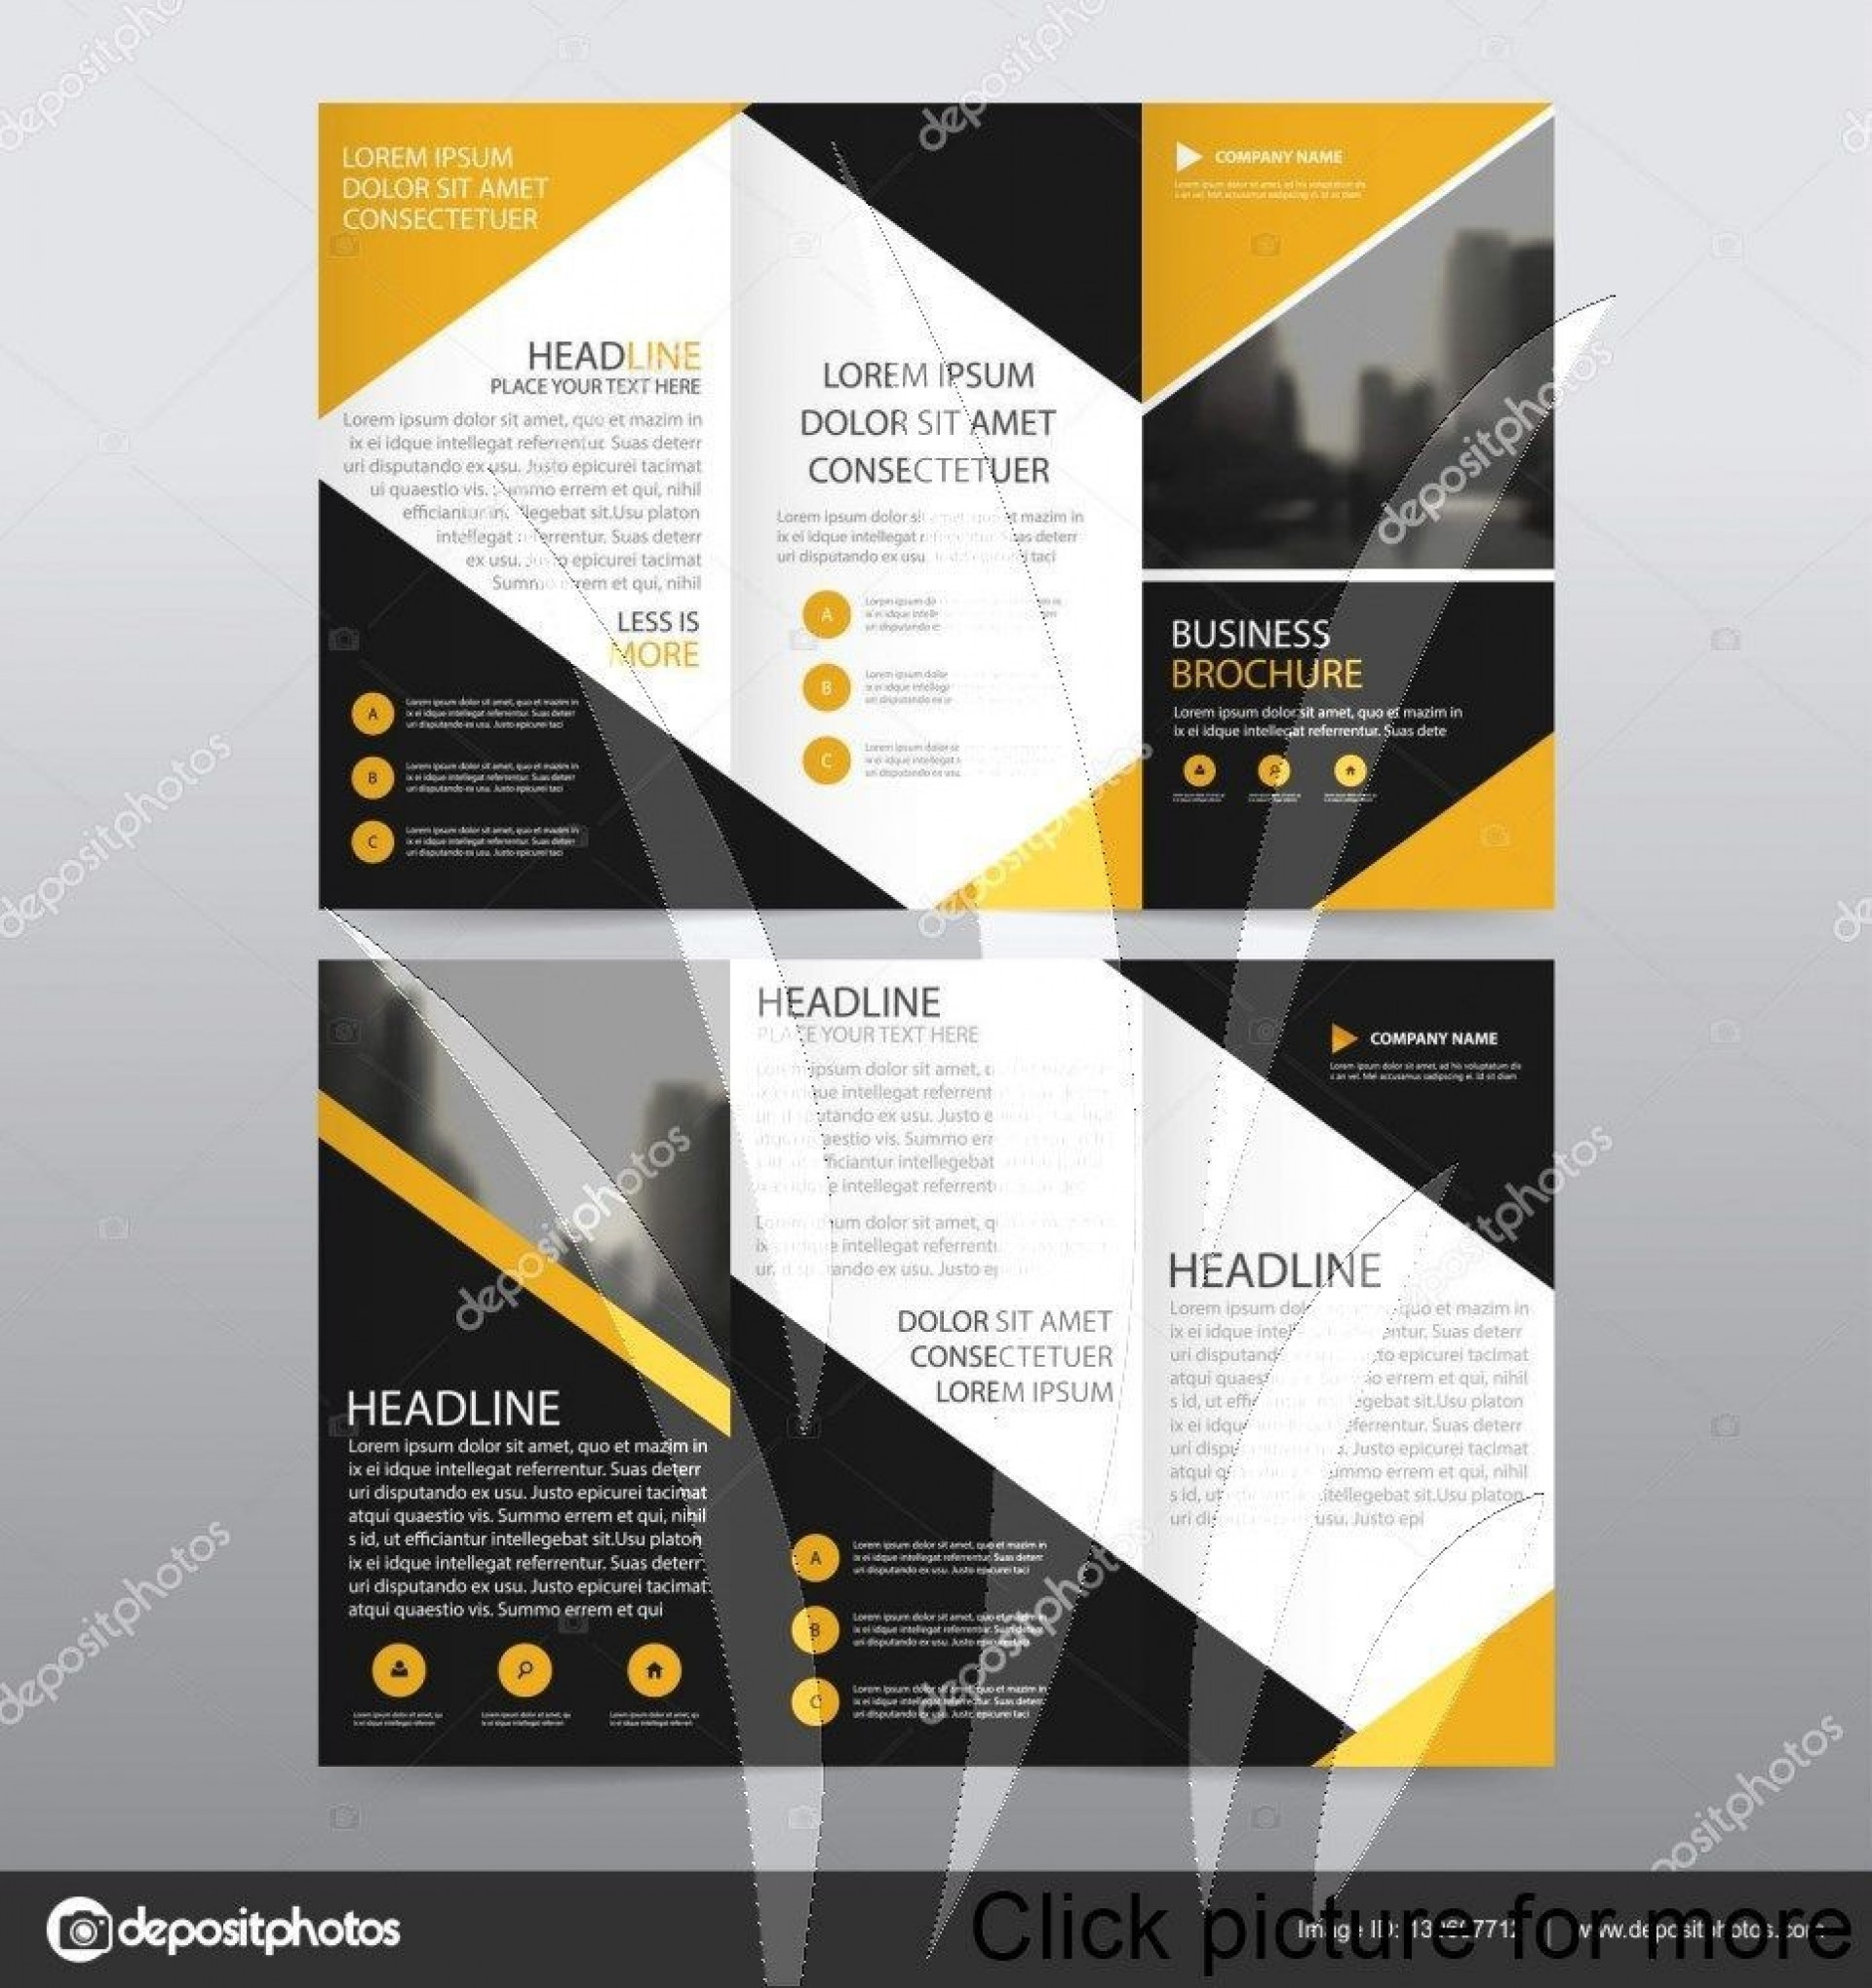 001 Frightening Brochure Design Template Psd Free Download Concept  Hotel1920